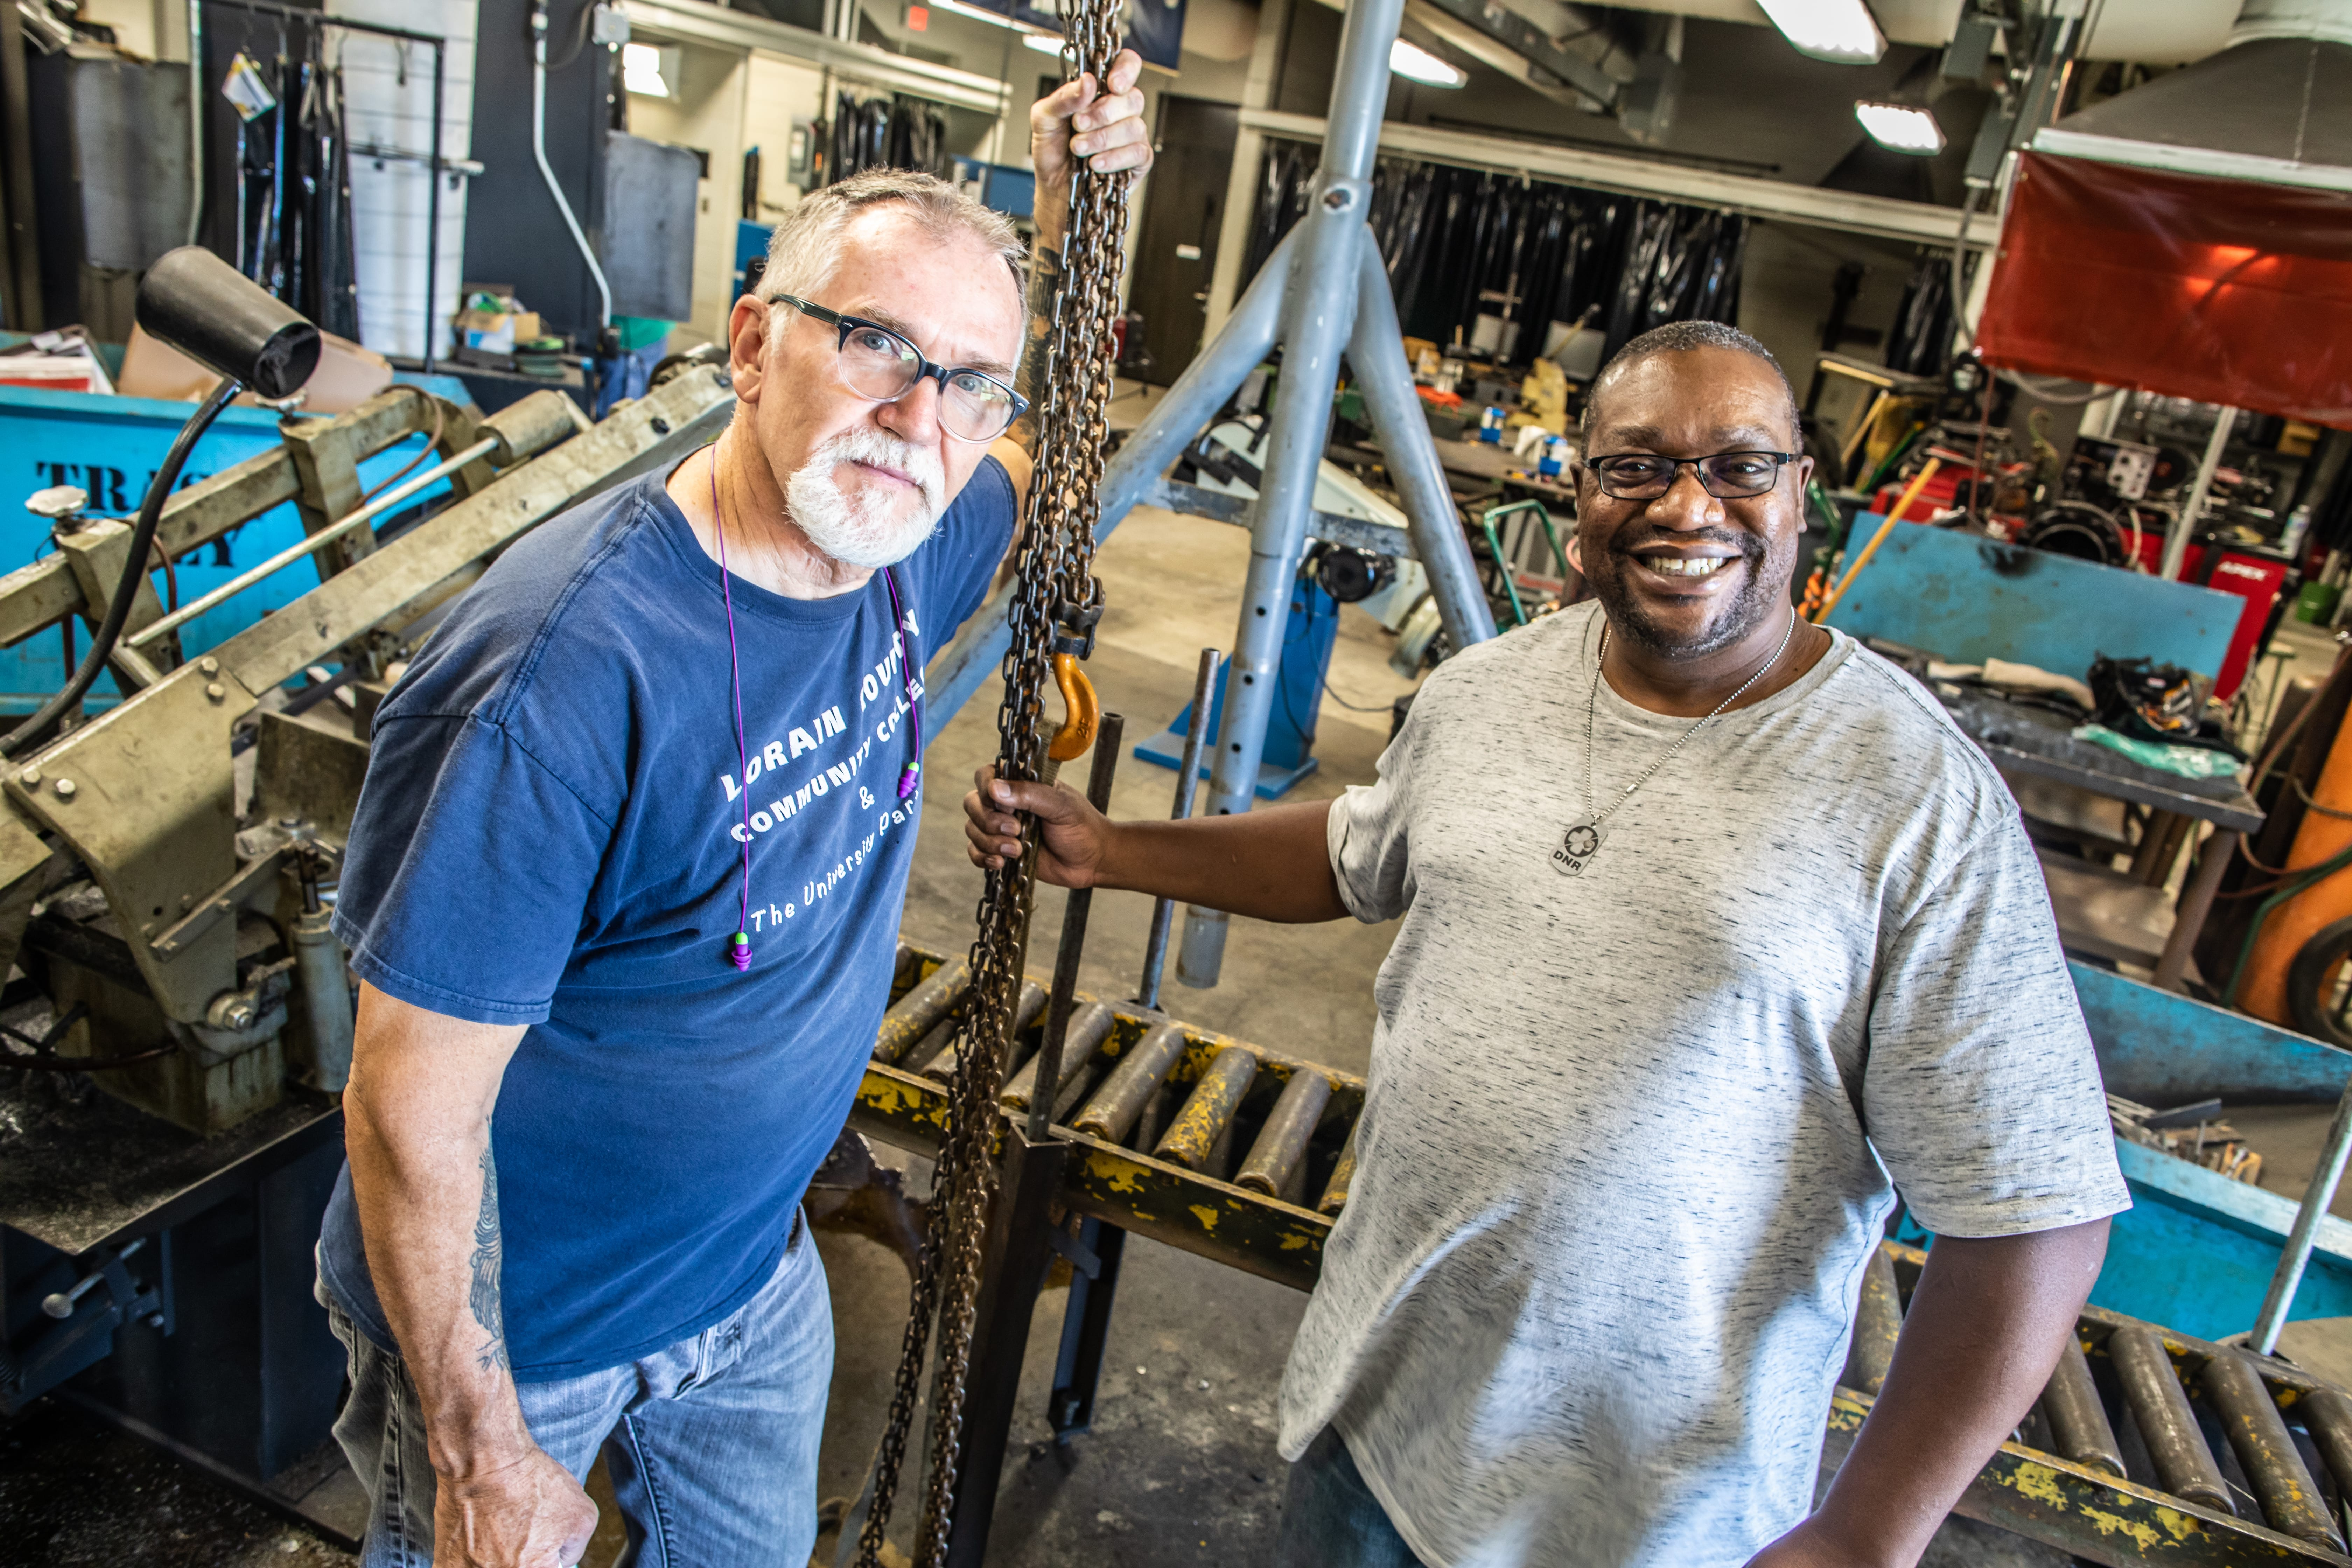 LCCC welding instructor Larry Waller and Erick Belmer